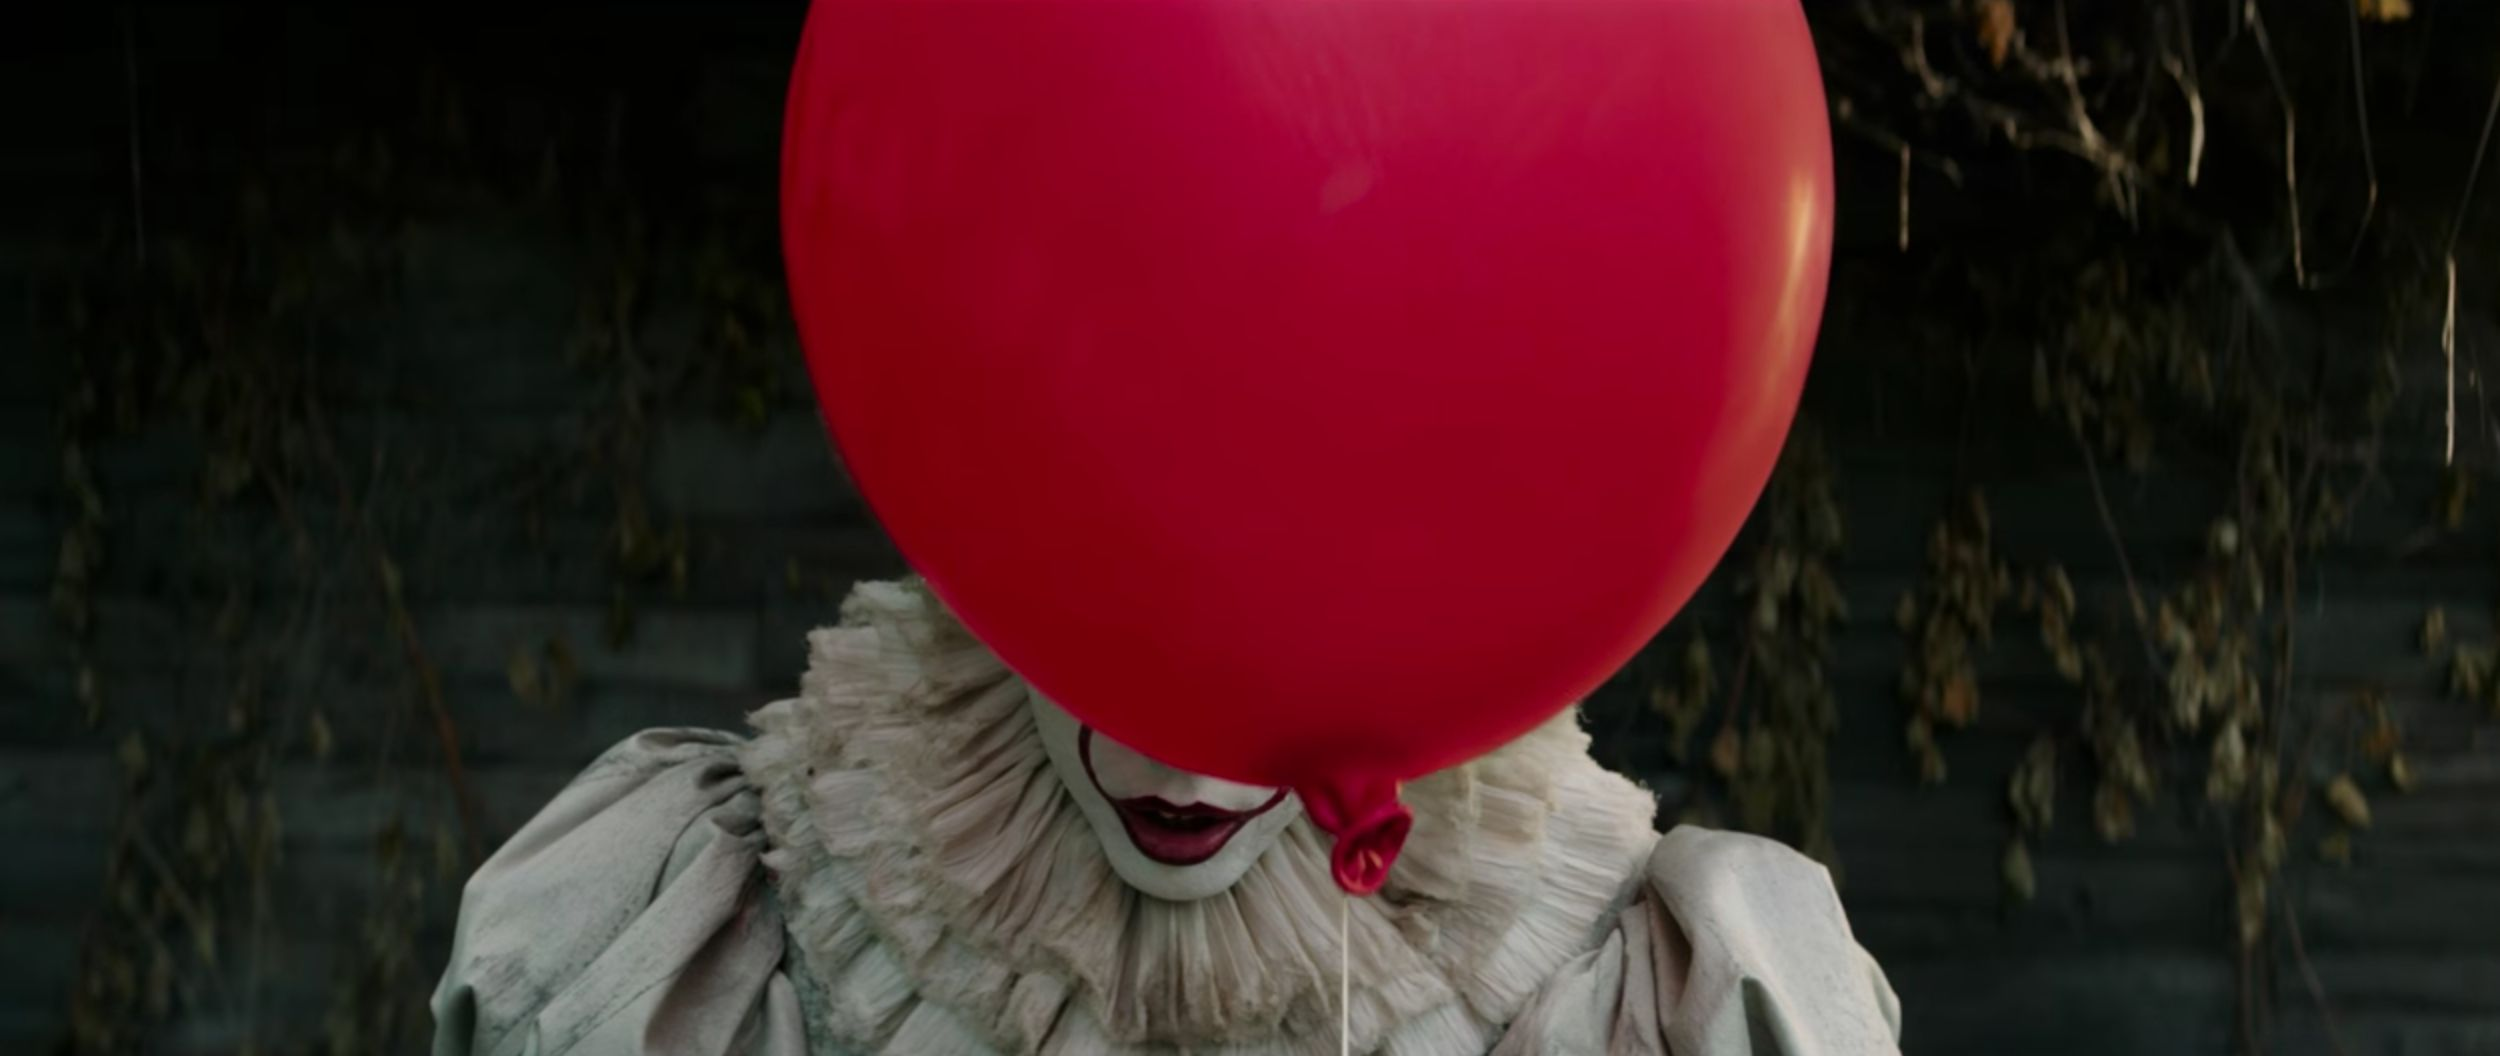 The First Teaser For 'It' Is Here And Will Definitely Give You